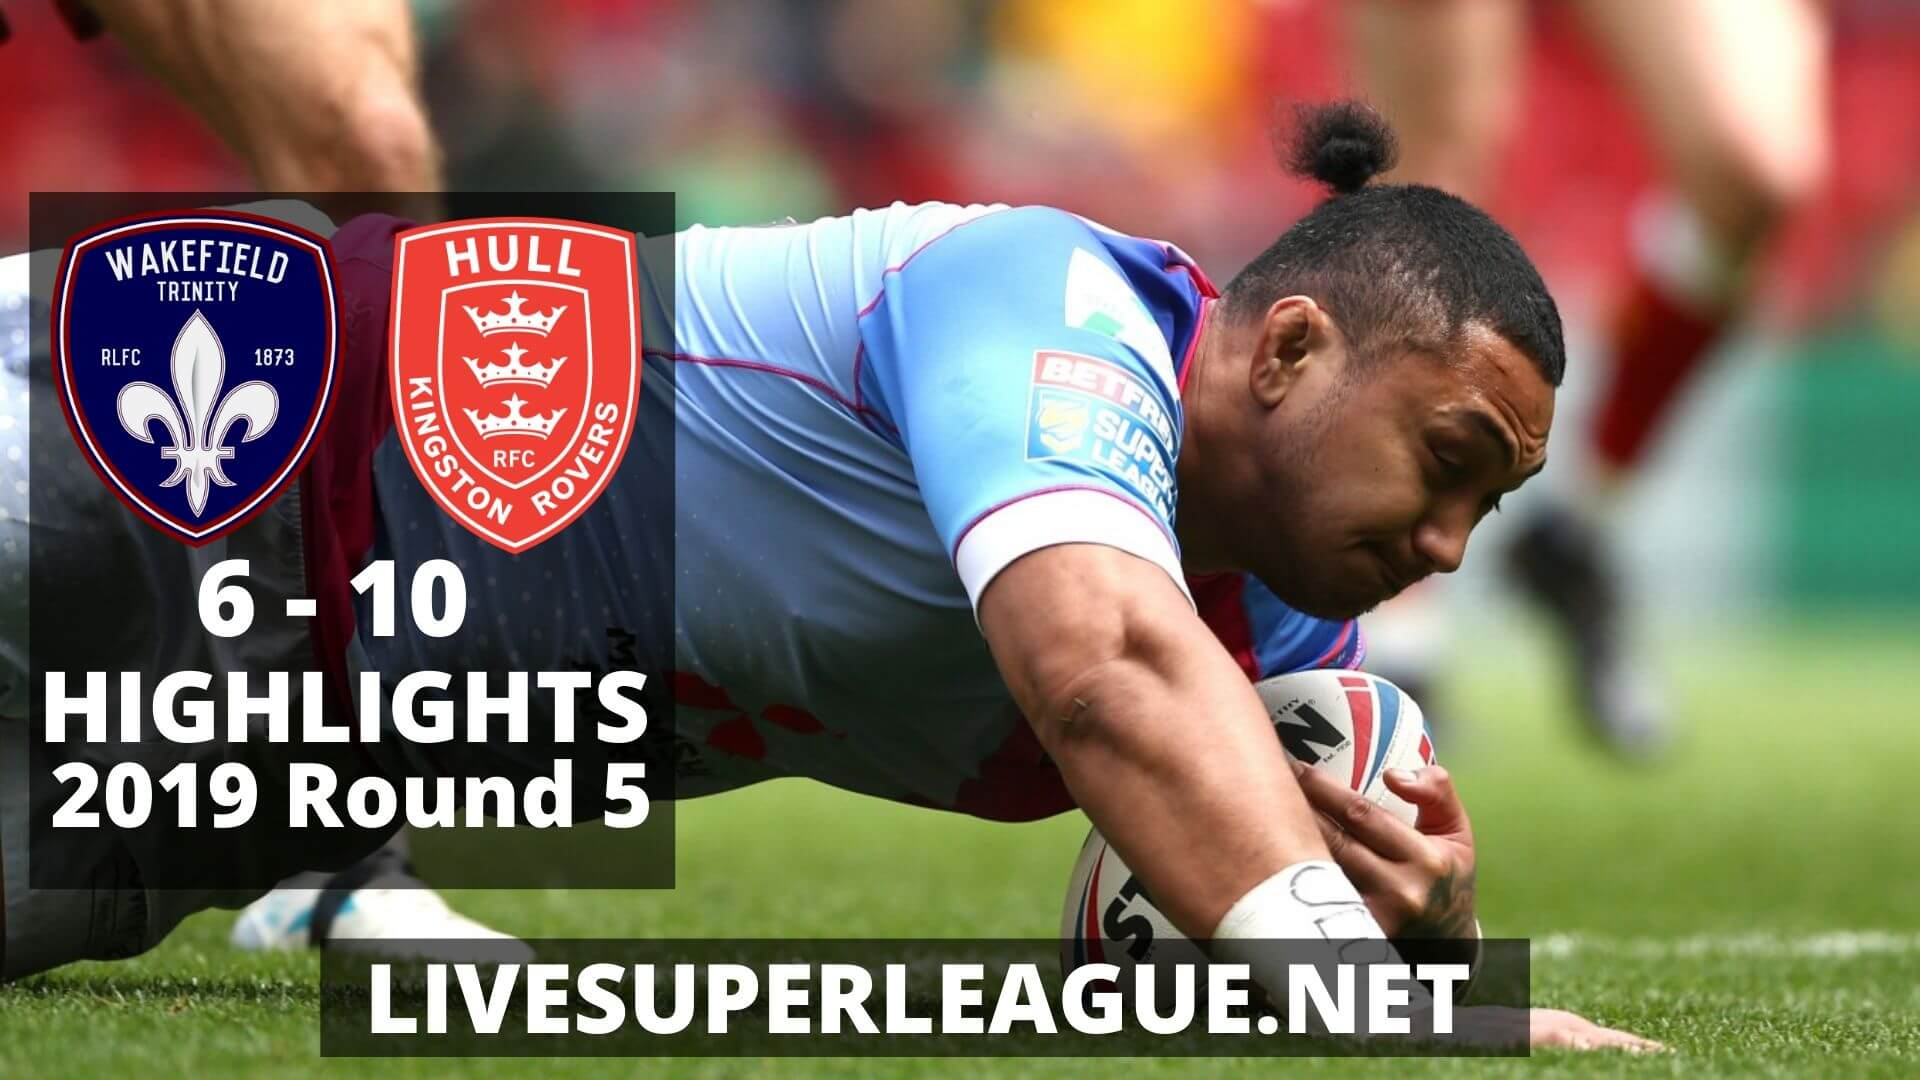 Wakefield Trinity Vs Hull Kingston Rovers Highlights 2019 Round 5